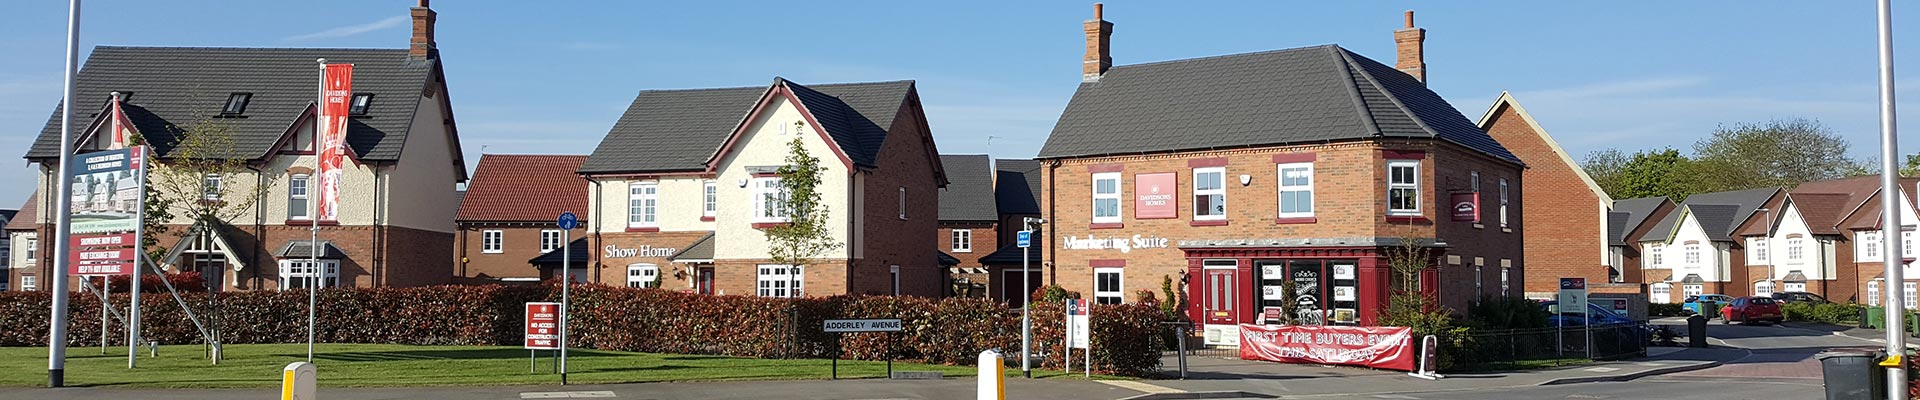 New housing, Nuneaton